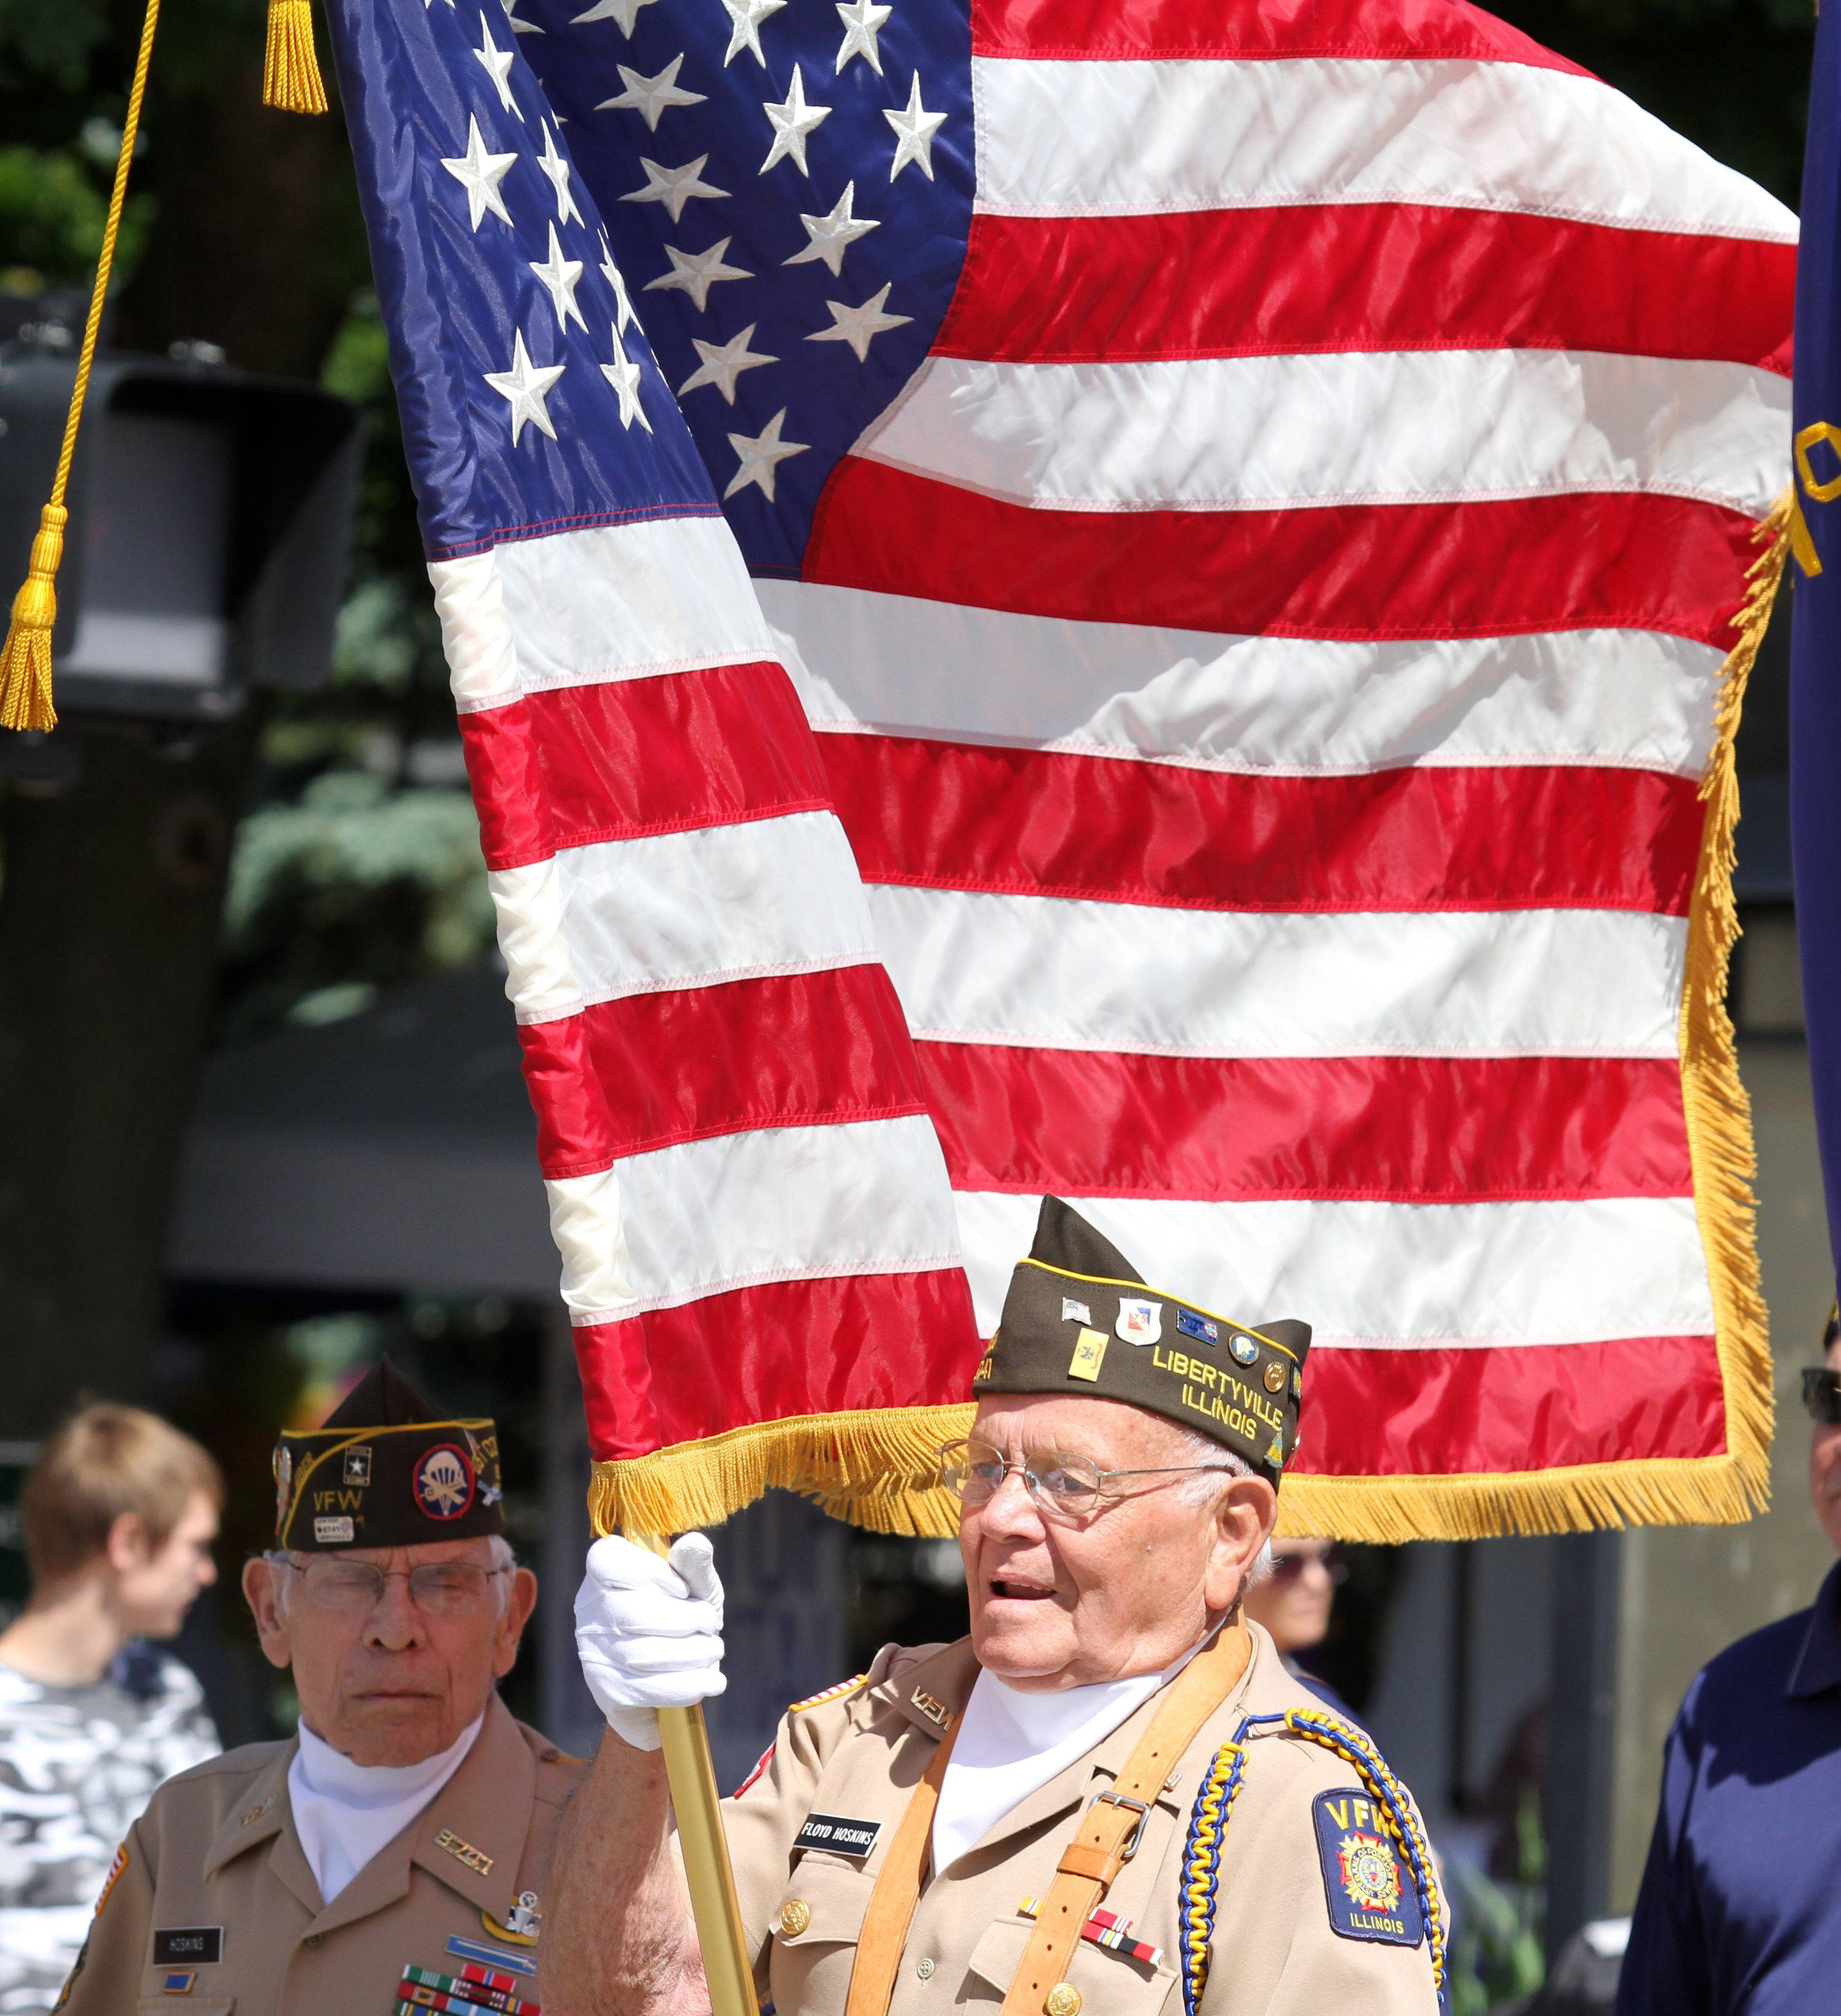 Floyd Hoskins with VFW Post 8741 leads off Libertyville Days Parade on Saturday.